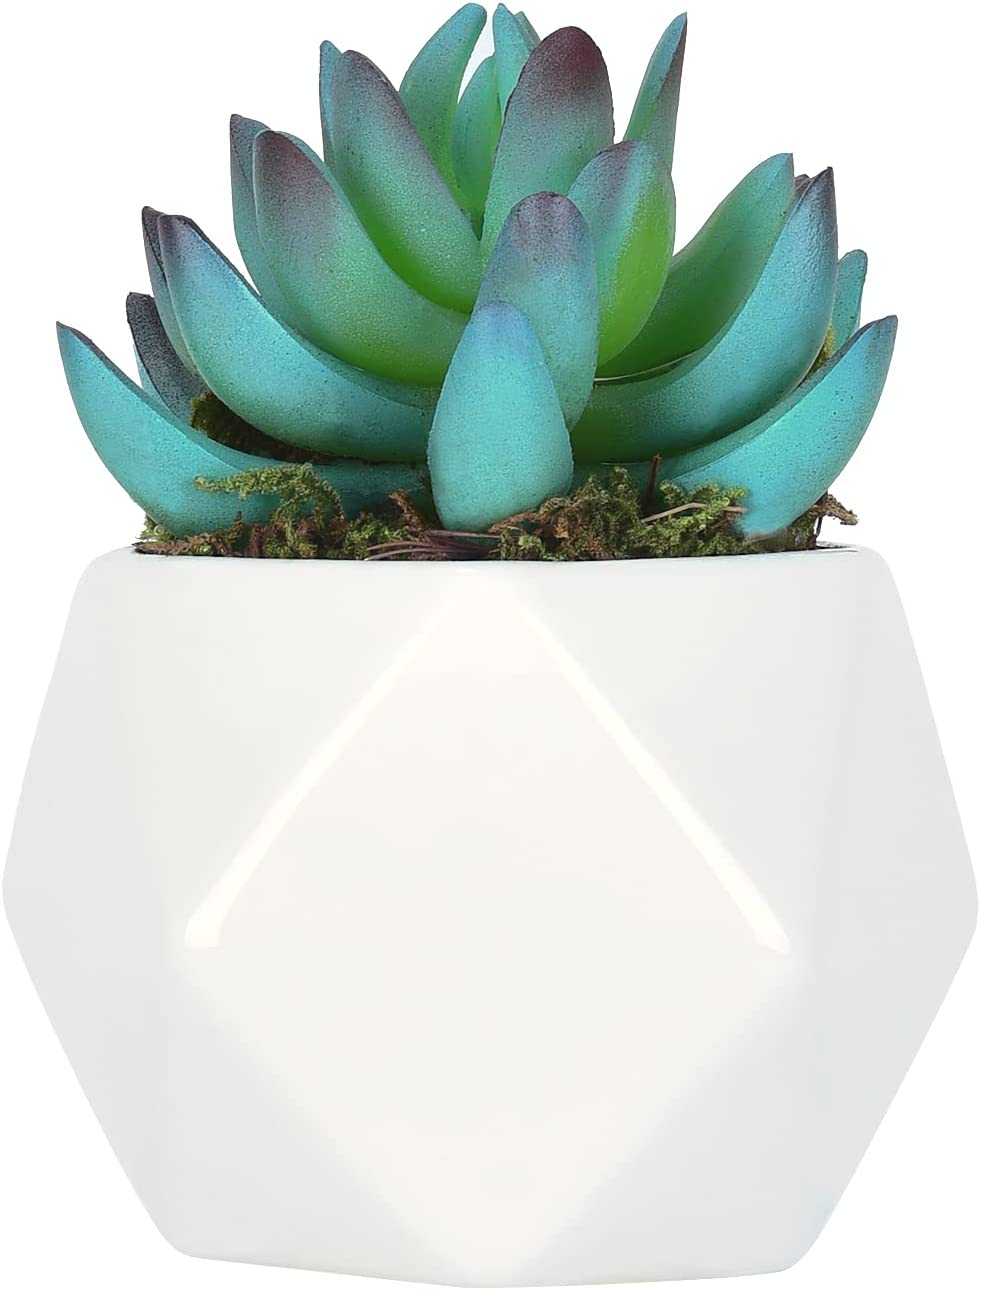 Artificial Succulent Plants, Faux Assorted Green Unpotted Faux Succulent Agave Floral Arrangement Fleshed Succulent Plant Textured for Home Indoor Outdoor Wedding Party Garden Decor